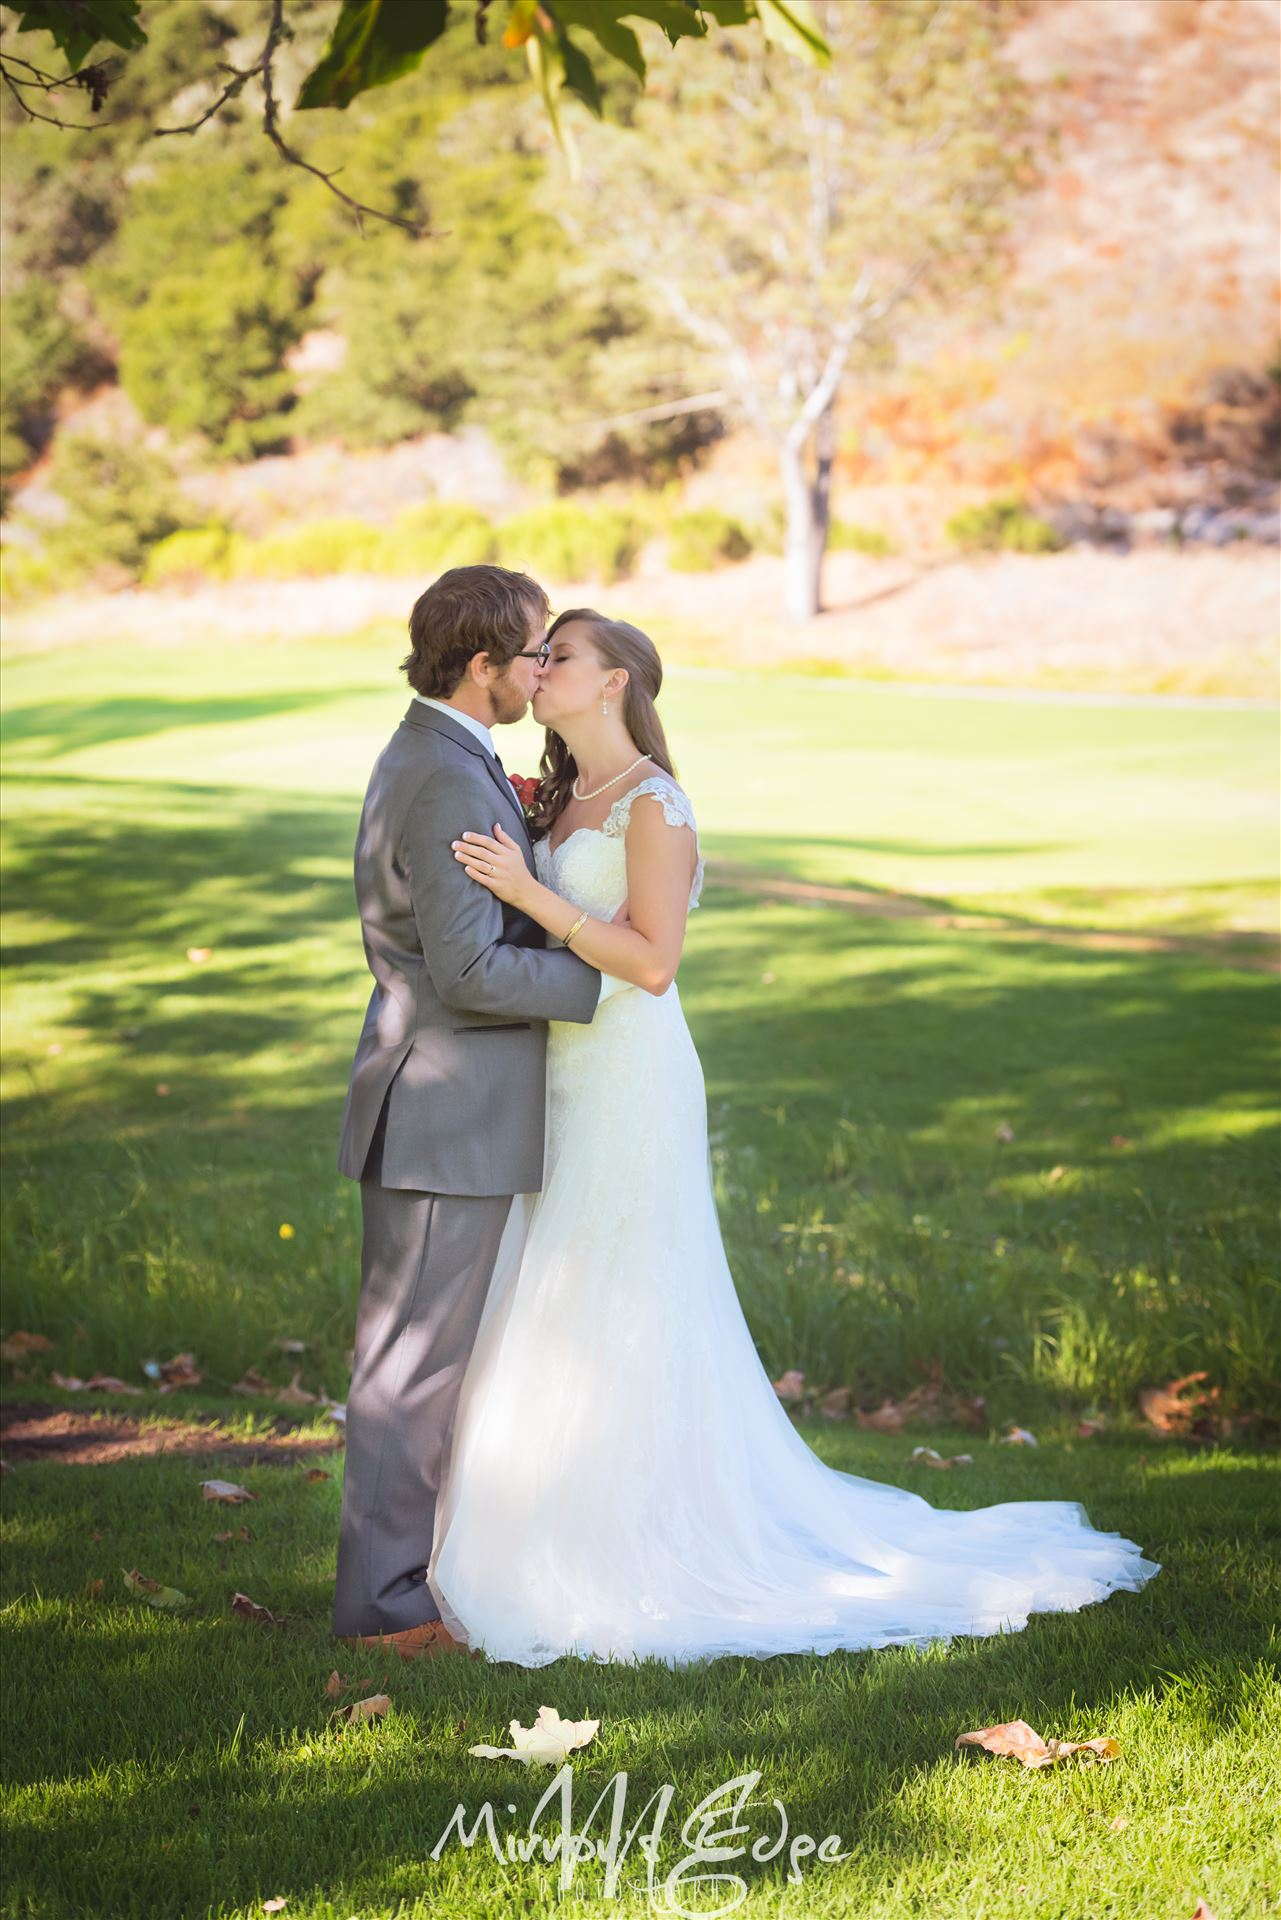 Port-6768.jpg - Romantic and Modern with a Vintage Touch - Wedding Photography at the Avila Bay Golf Resort in Avila Beach, California by Sarah Williams